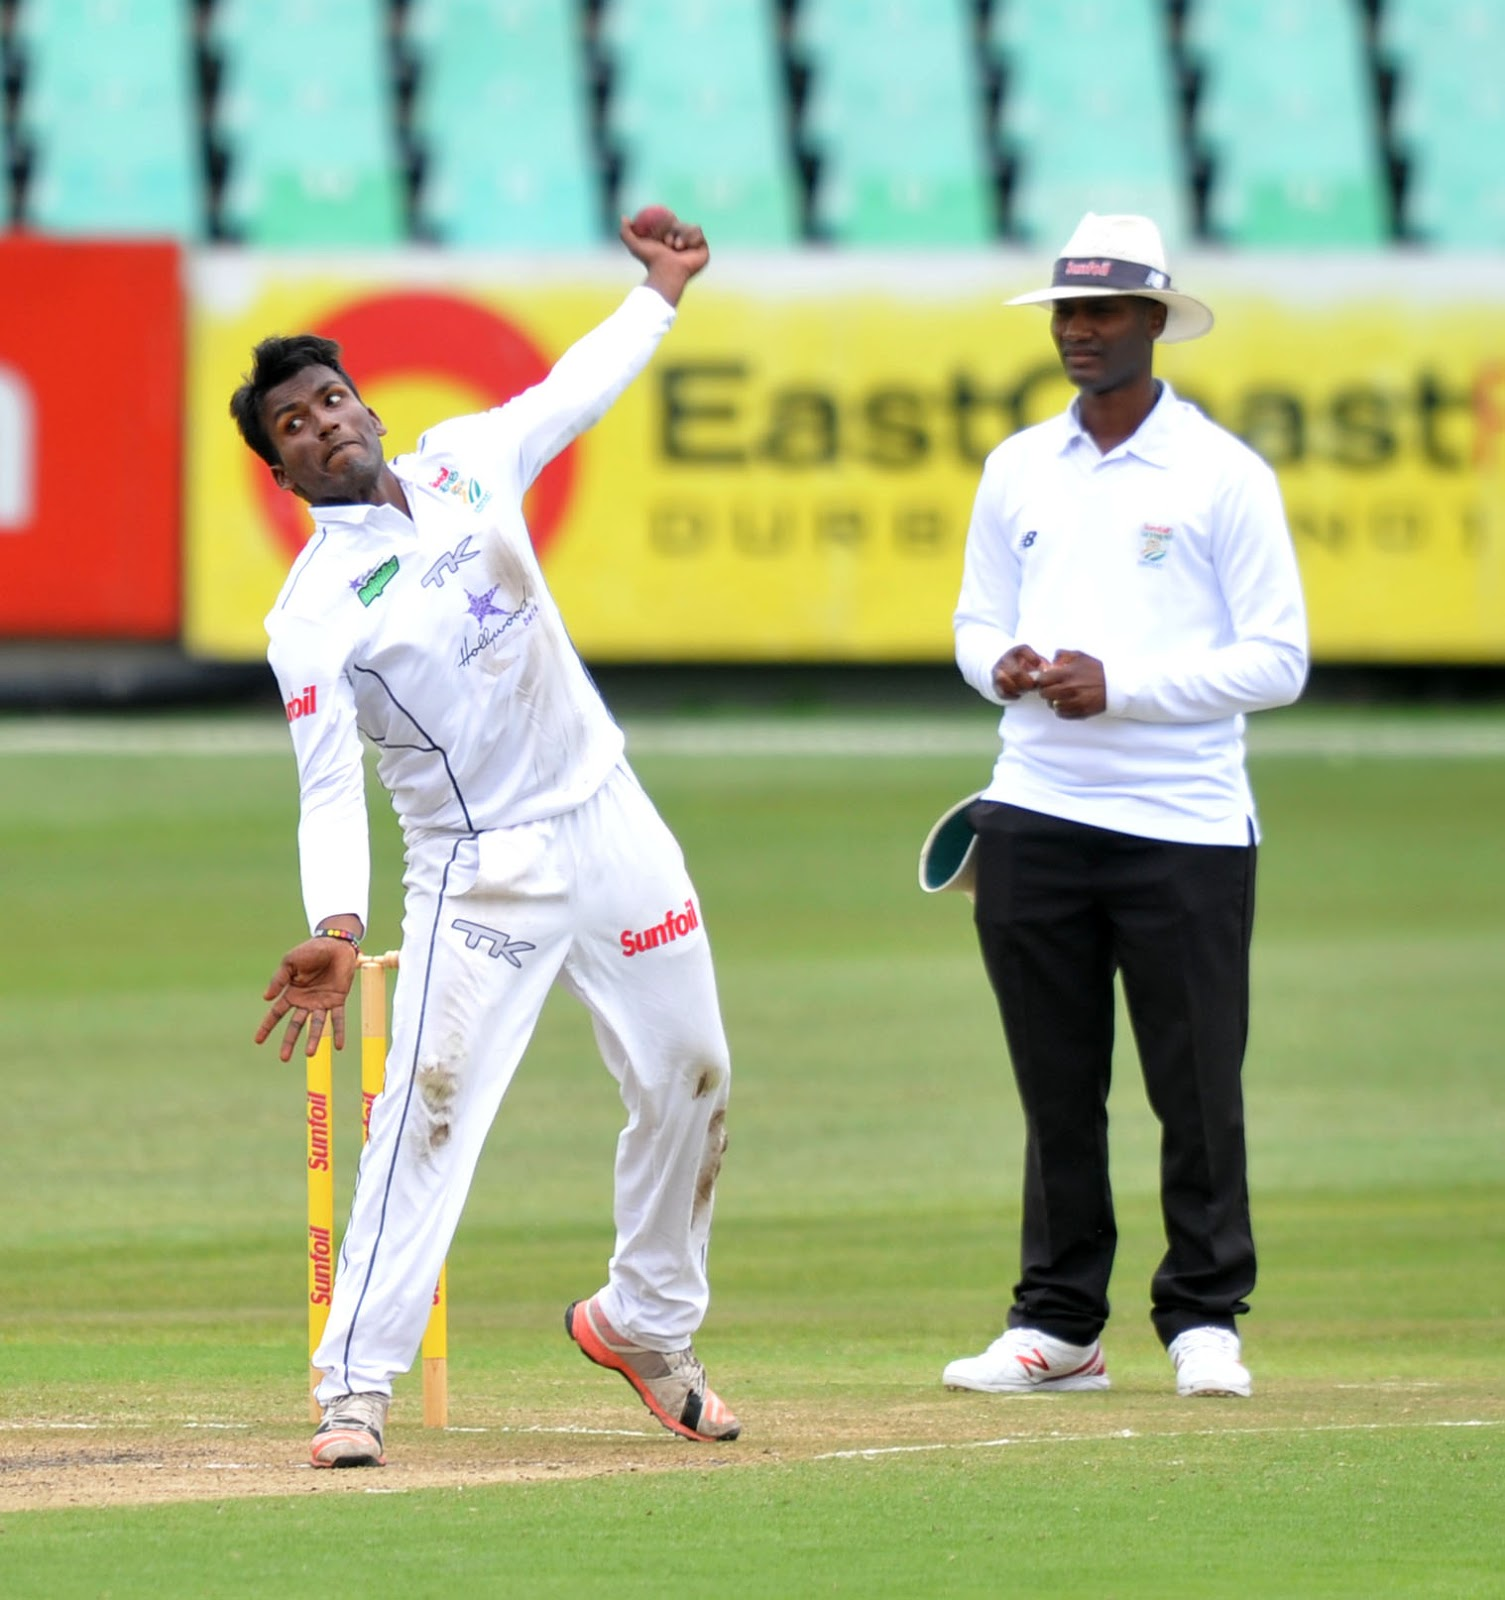 Having returned from India, Hollywoodbets Dolphins all-rounder Senuran Muthusamy will return to their squad for their CA 4-Day Domestic Series match with the Imperial Lions at Imperial Wanderers starting on Monday.